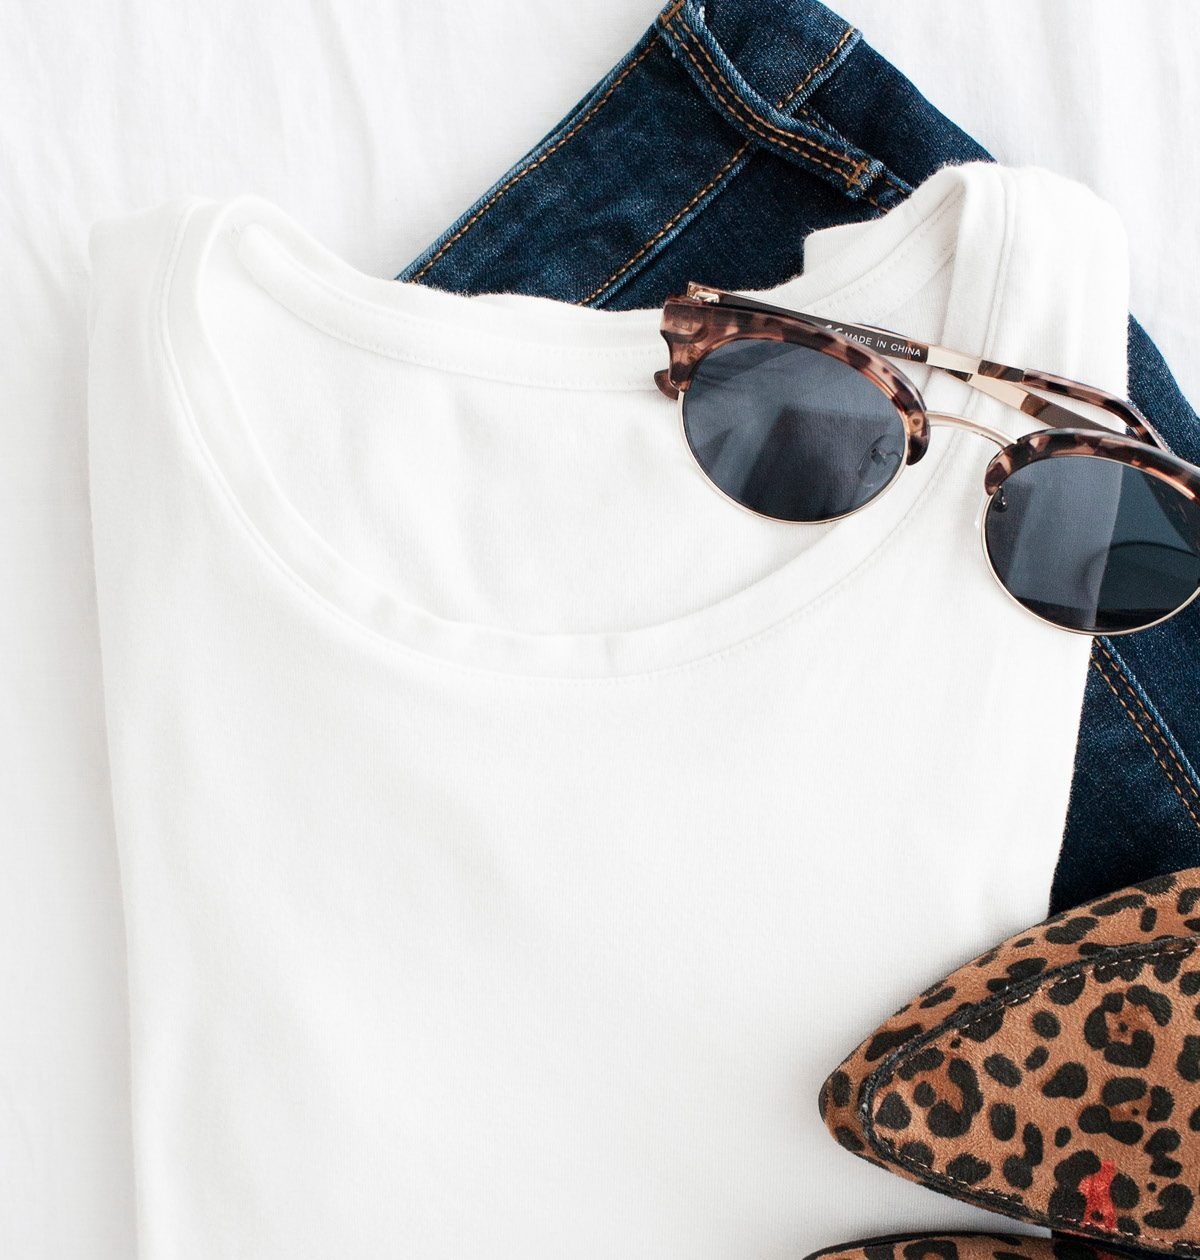 A simple outfit consisting of jeans, a white t shirt, sunglasses, and leopard print mules.